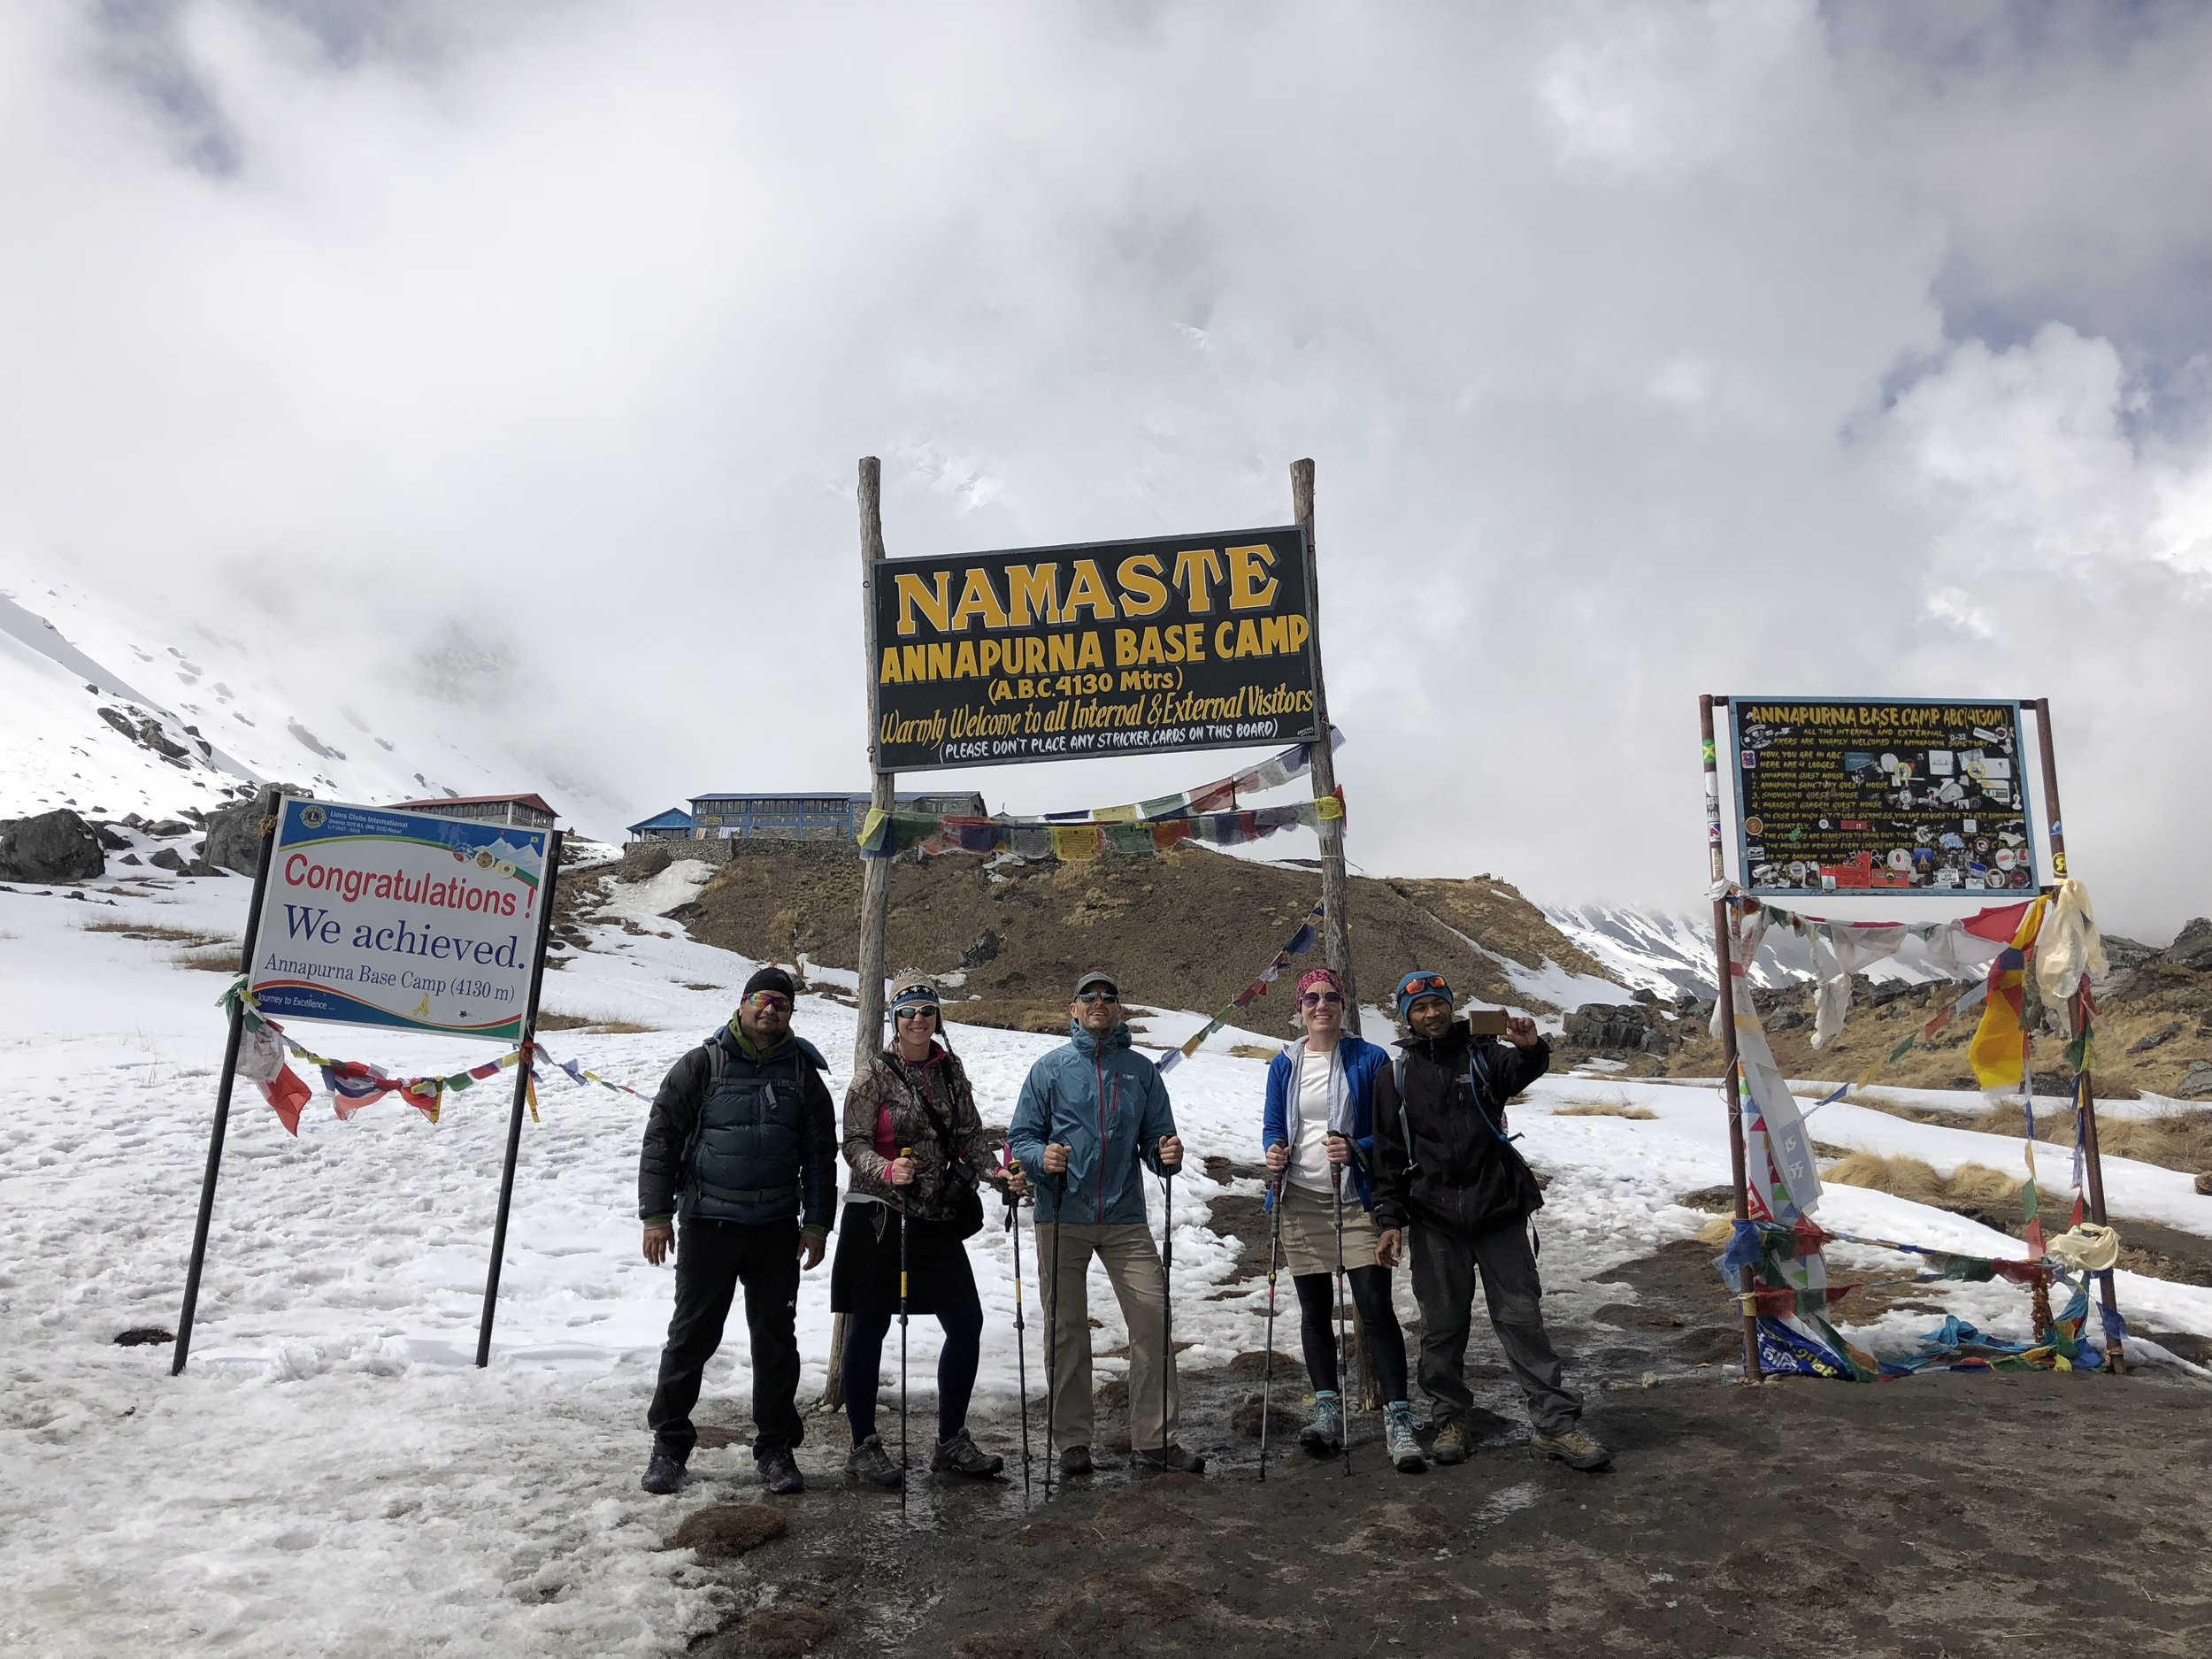 annapurna-base-camp-nepal